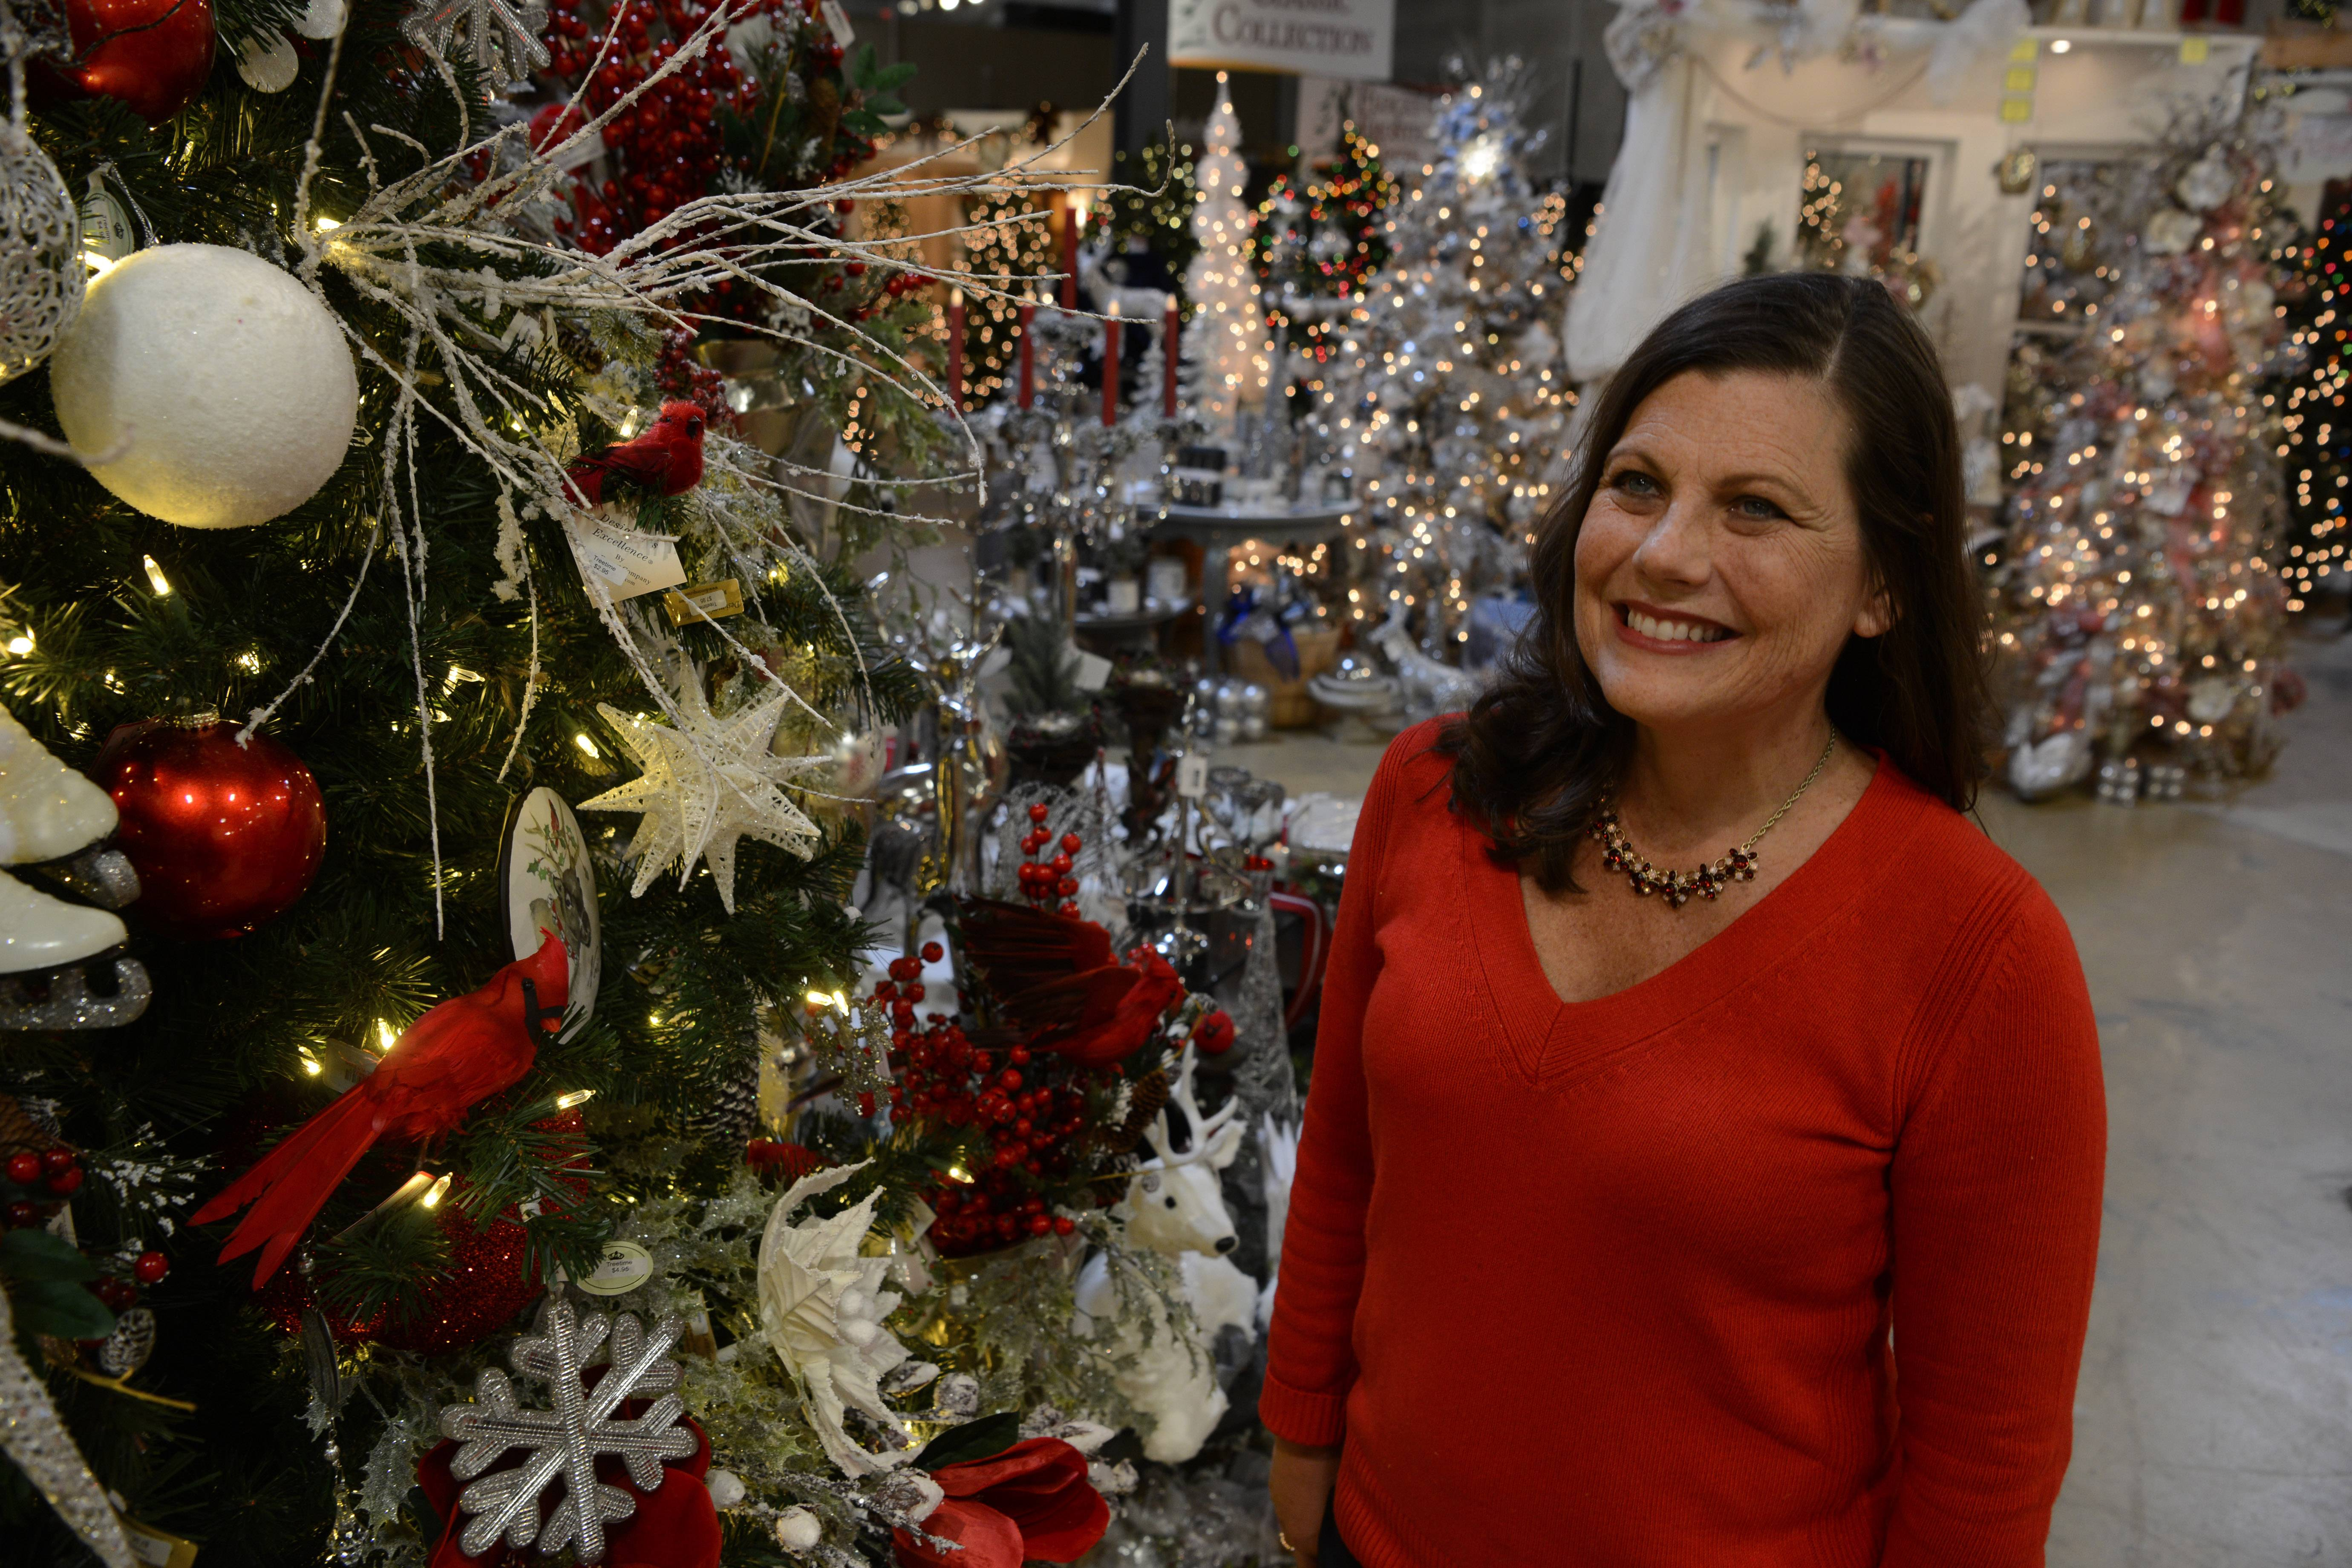 Treetime Christmas Creations owner Laurie Kane shows the Winter Garden artificial tree available at her shop in Lake Barrington.